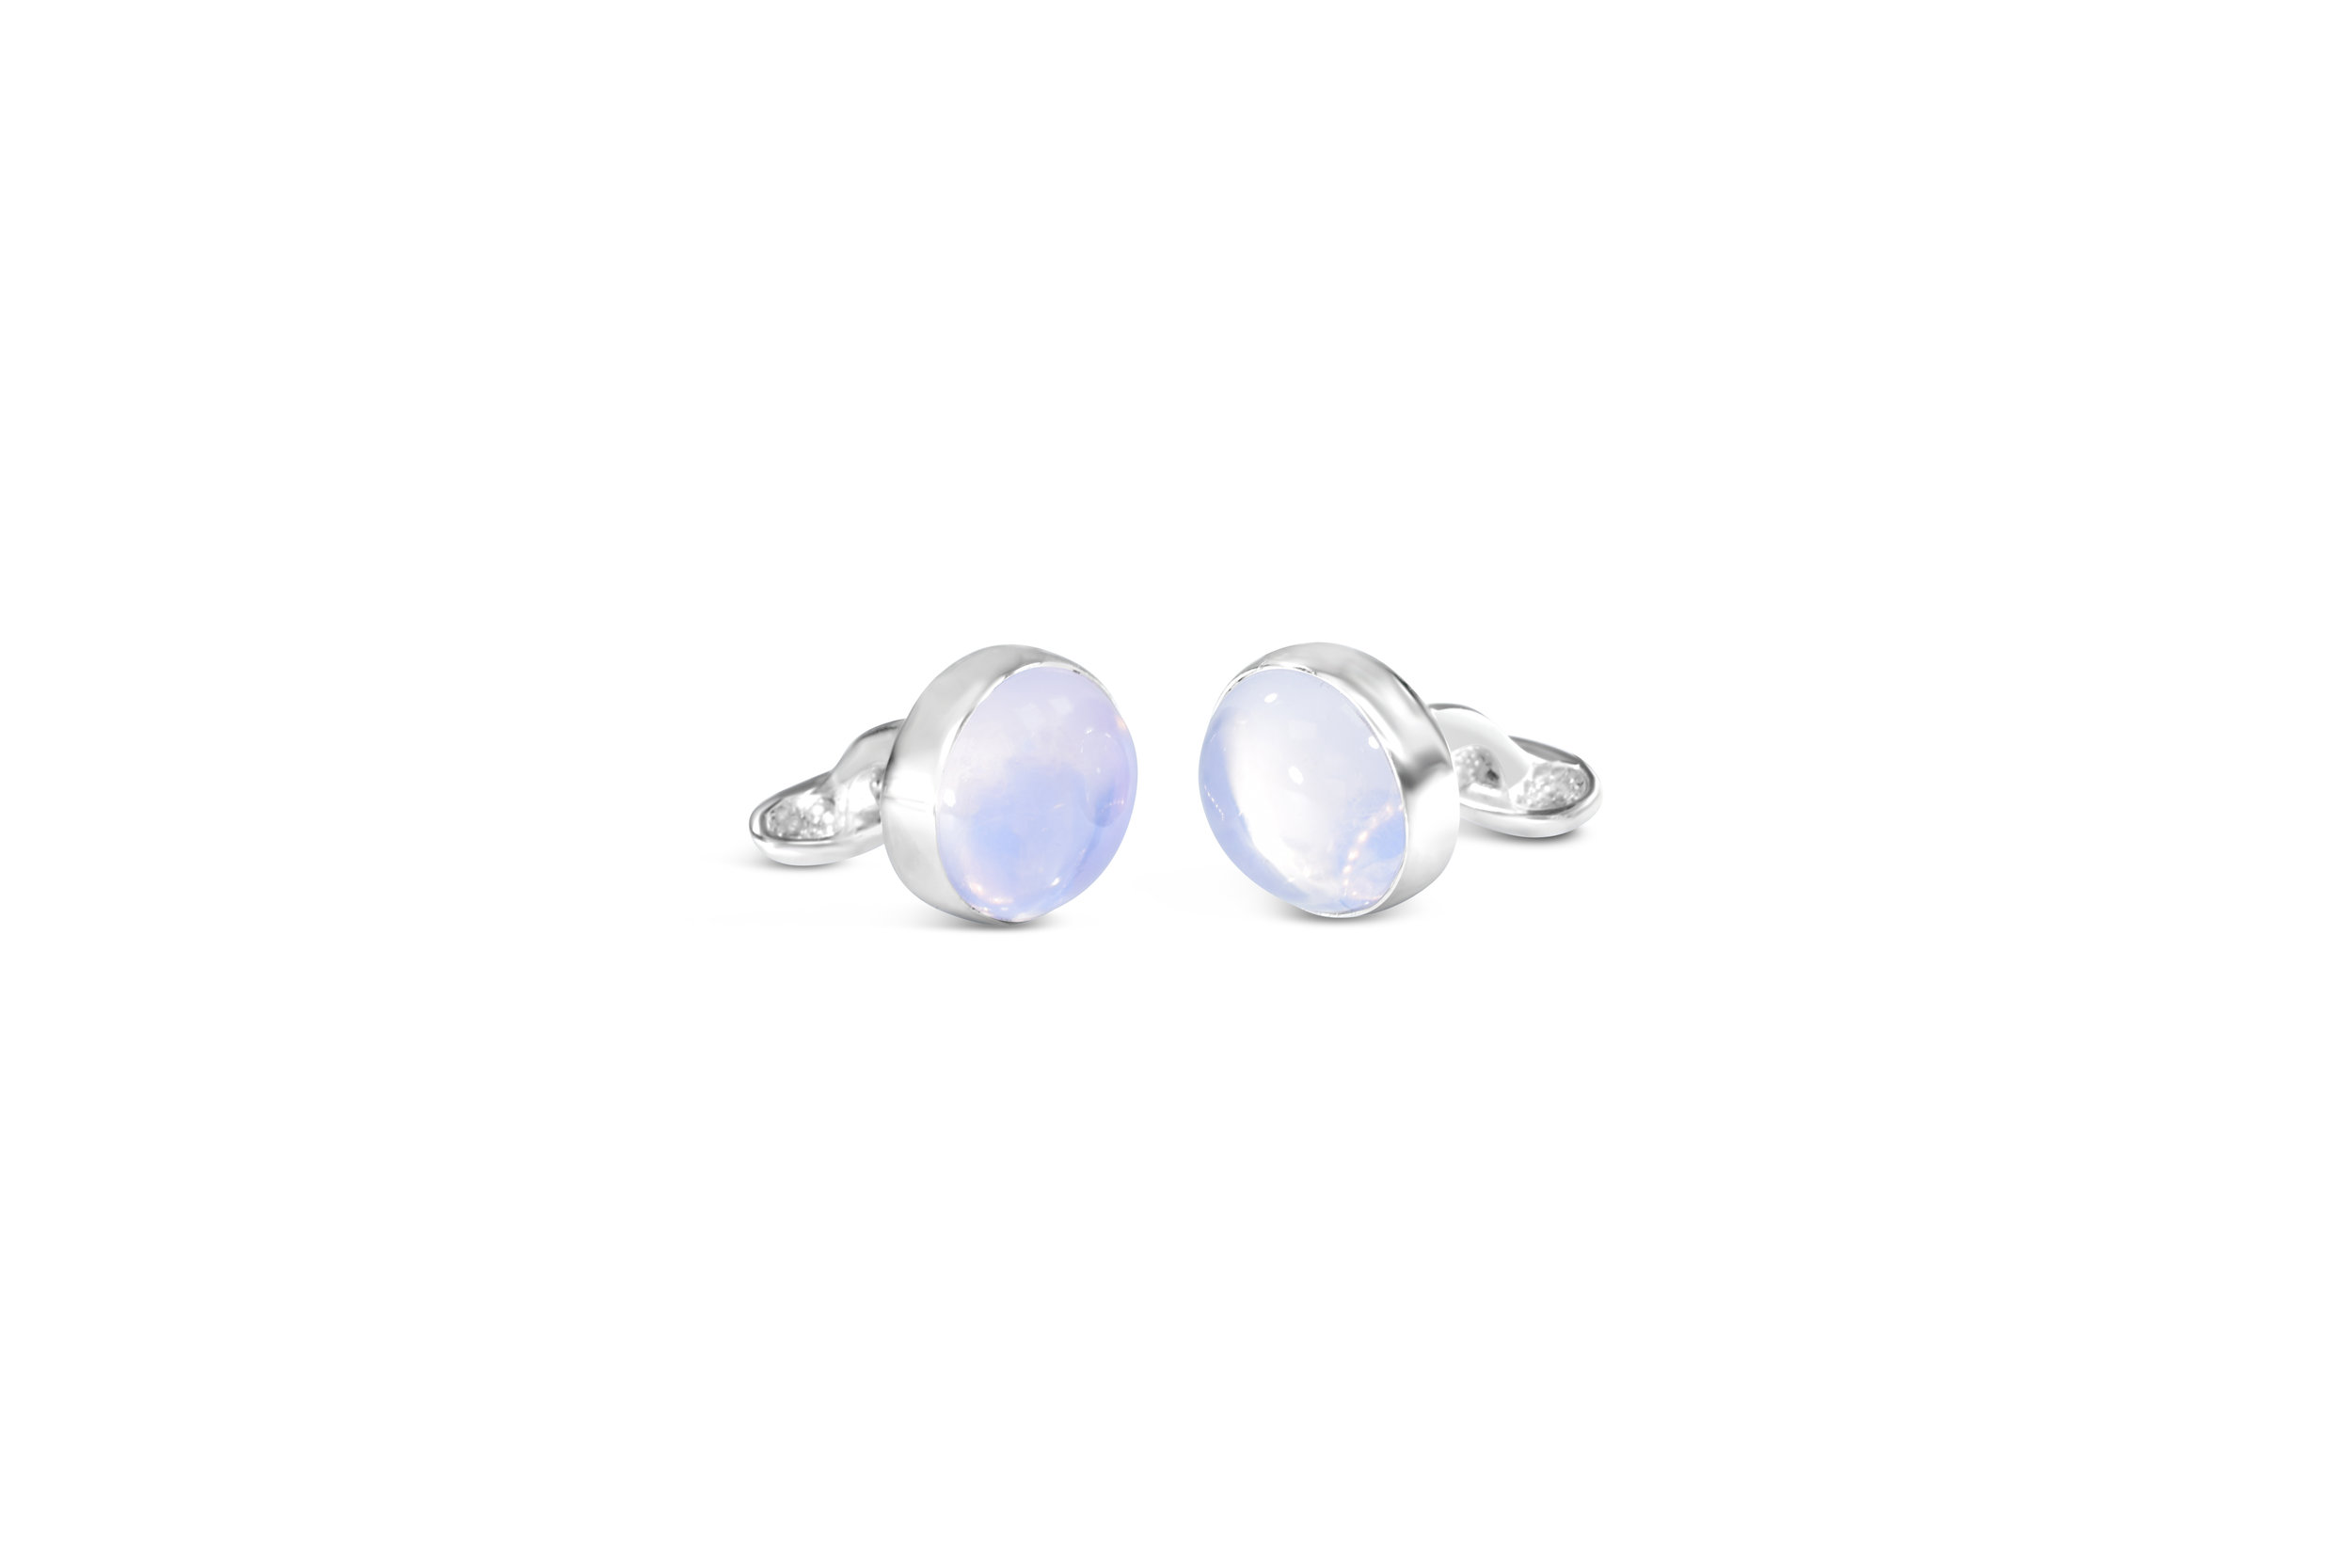 mens cufflinks made of sterling silver and lavender moonstone